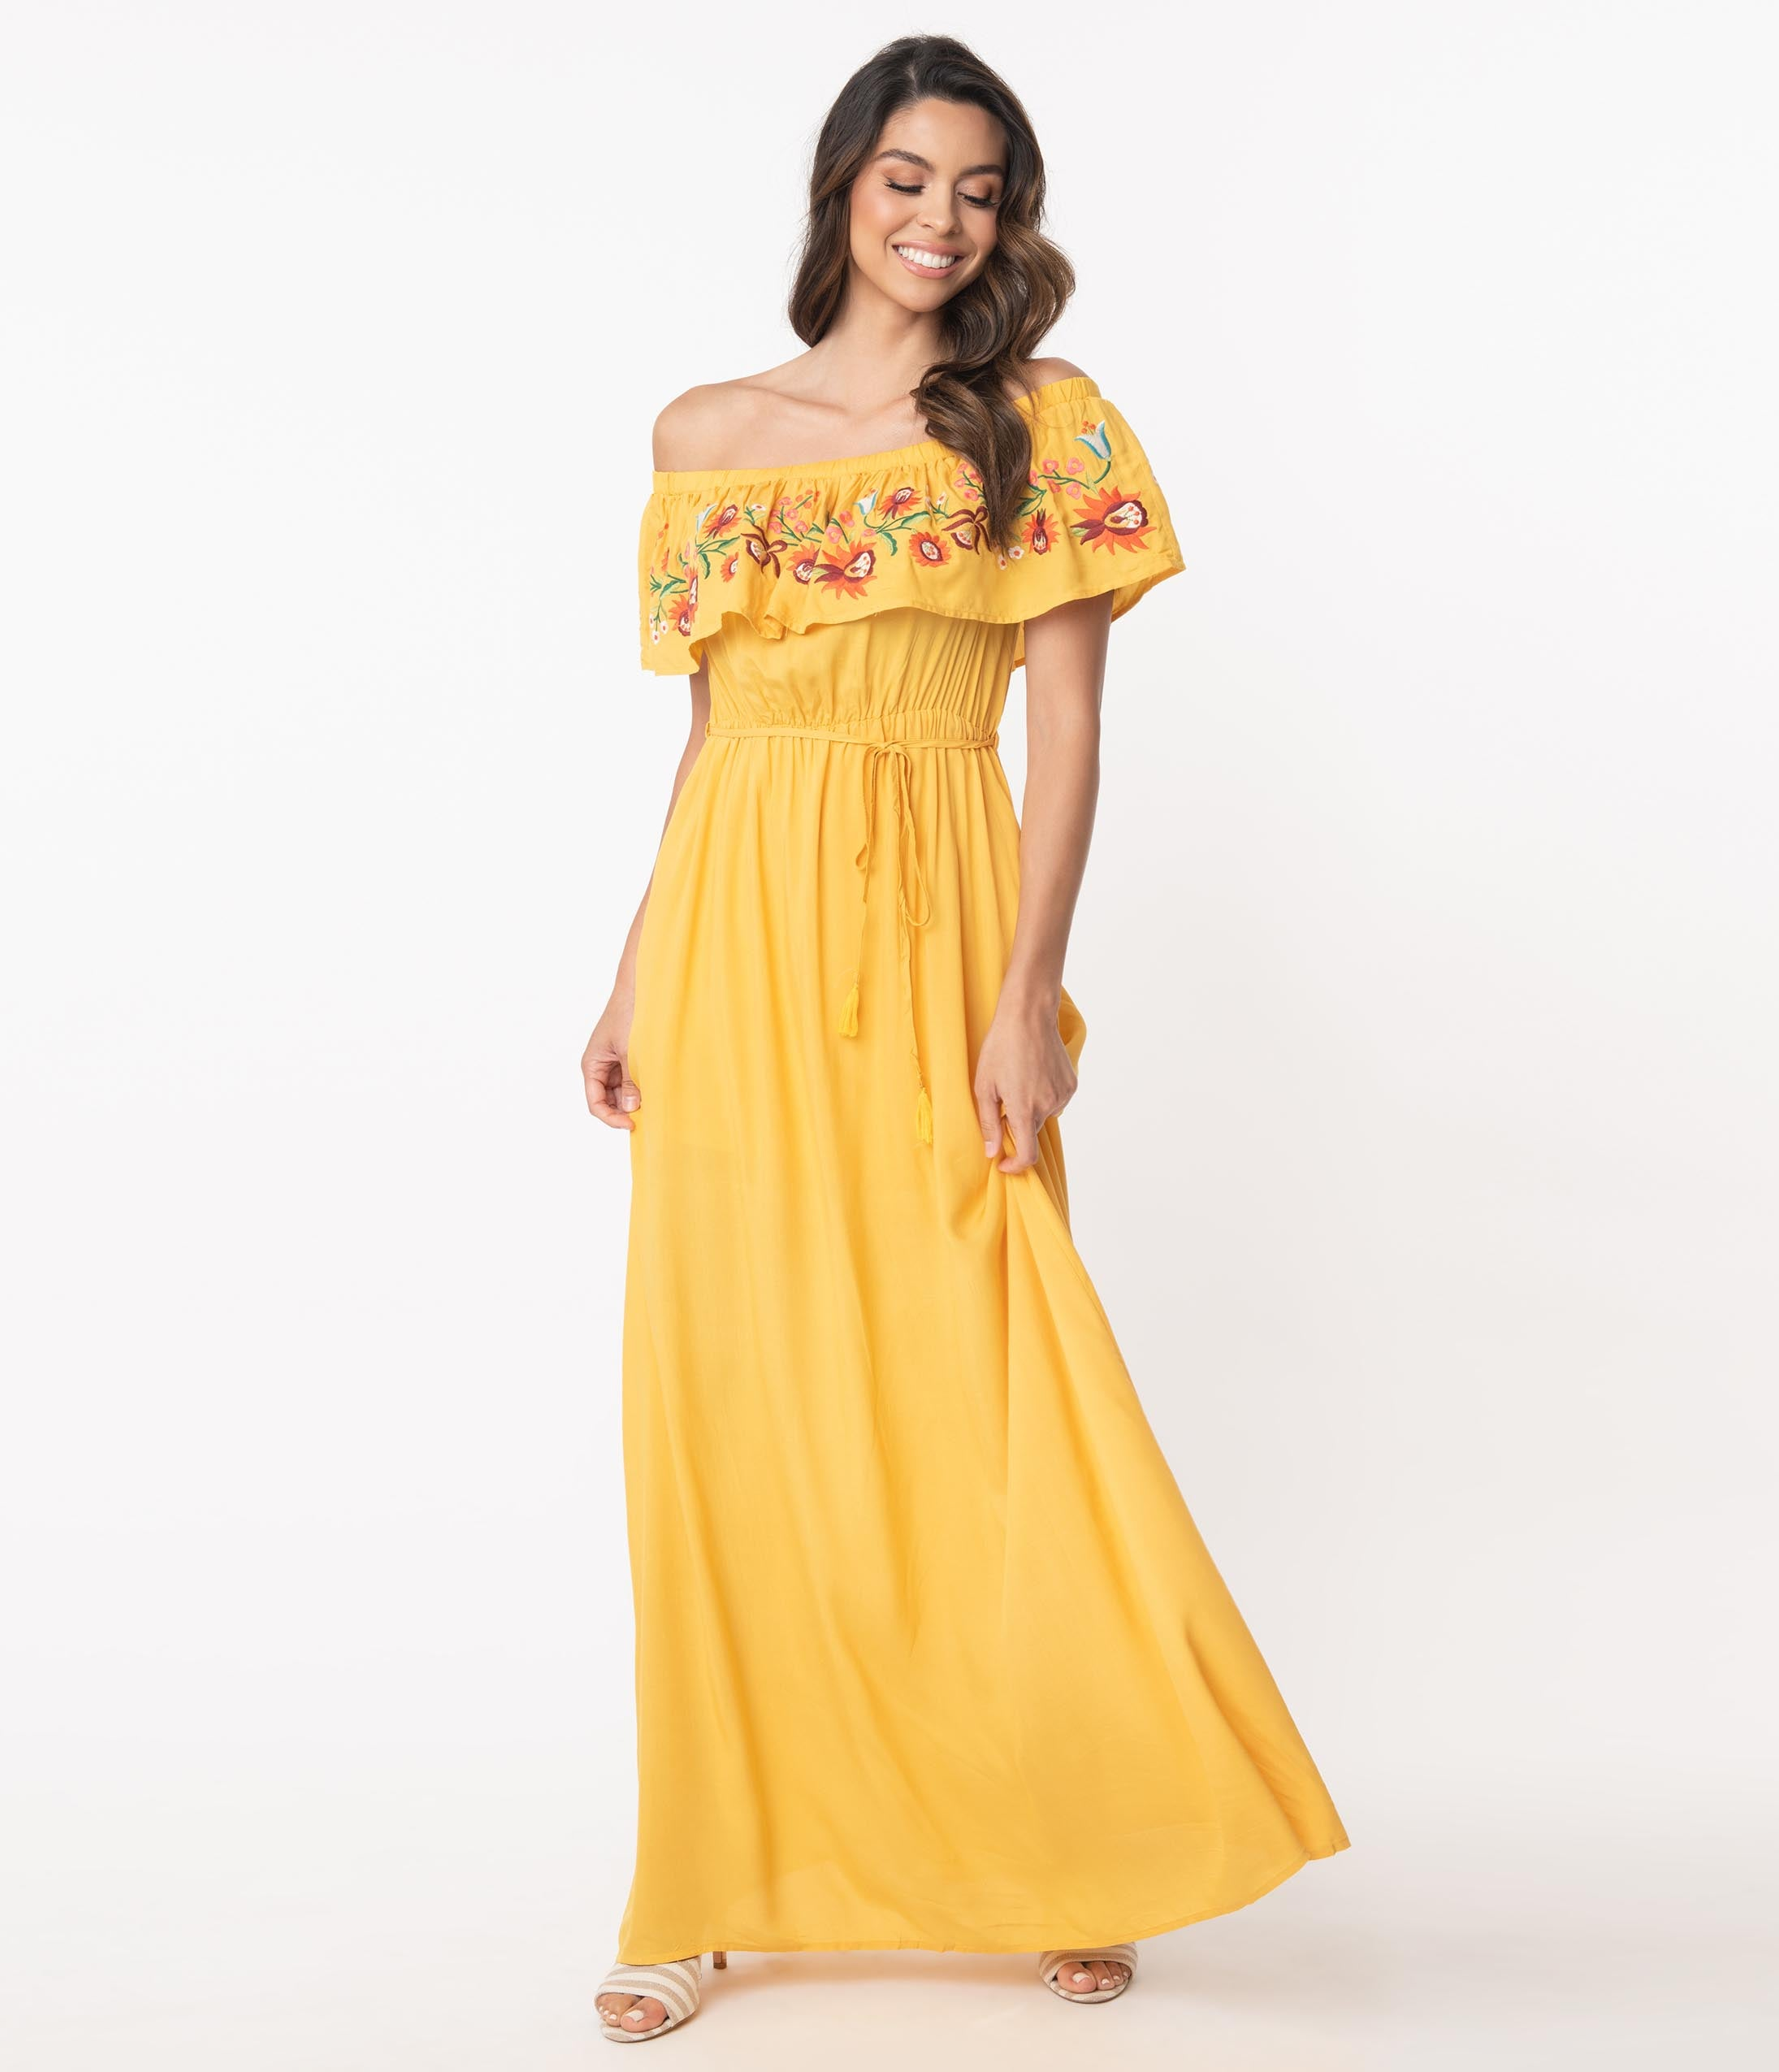 Modest, Mature, Mrs. Vintage Dresses – 20s, 30s, 40s, 50s, 60s 1970S Honey Mustard Off Shoulder Maxi Dress $68.00 AT vintagedancer.com